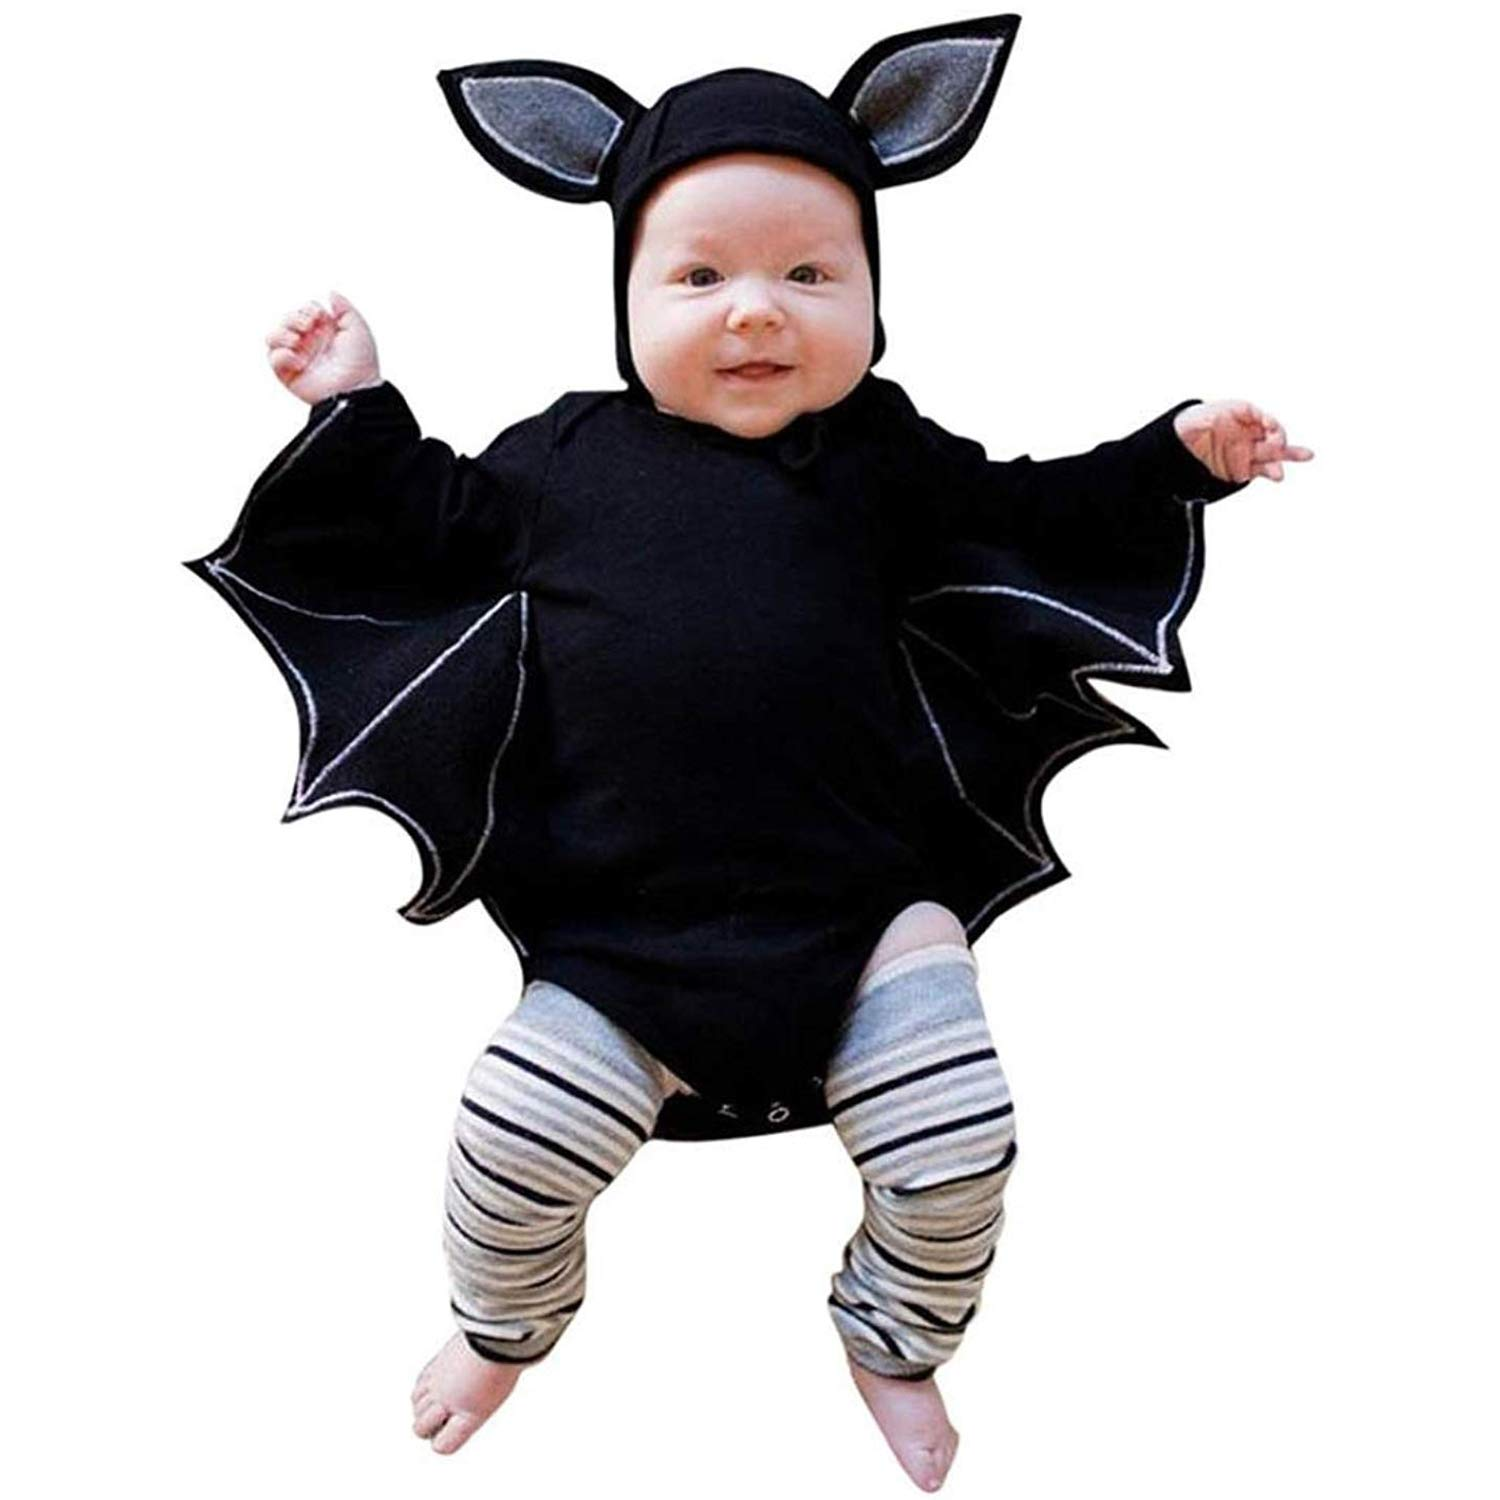 BELS Baby Girl Boy Halloween Clothes Black Bat Costume Cloak Romper with Hat Outfit (Black, 80/6-12M)